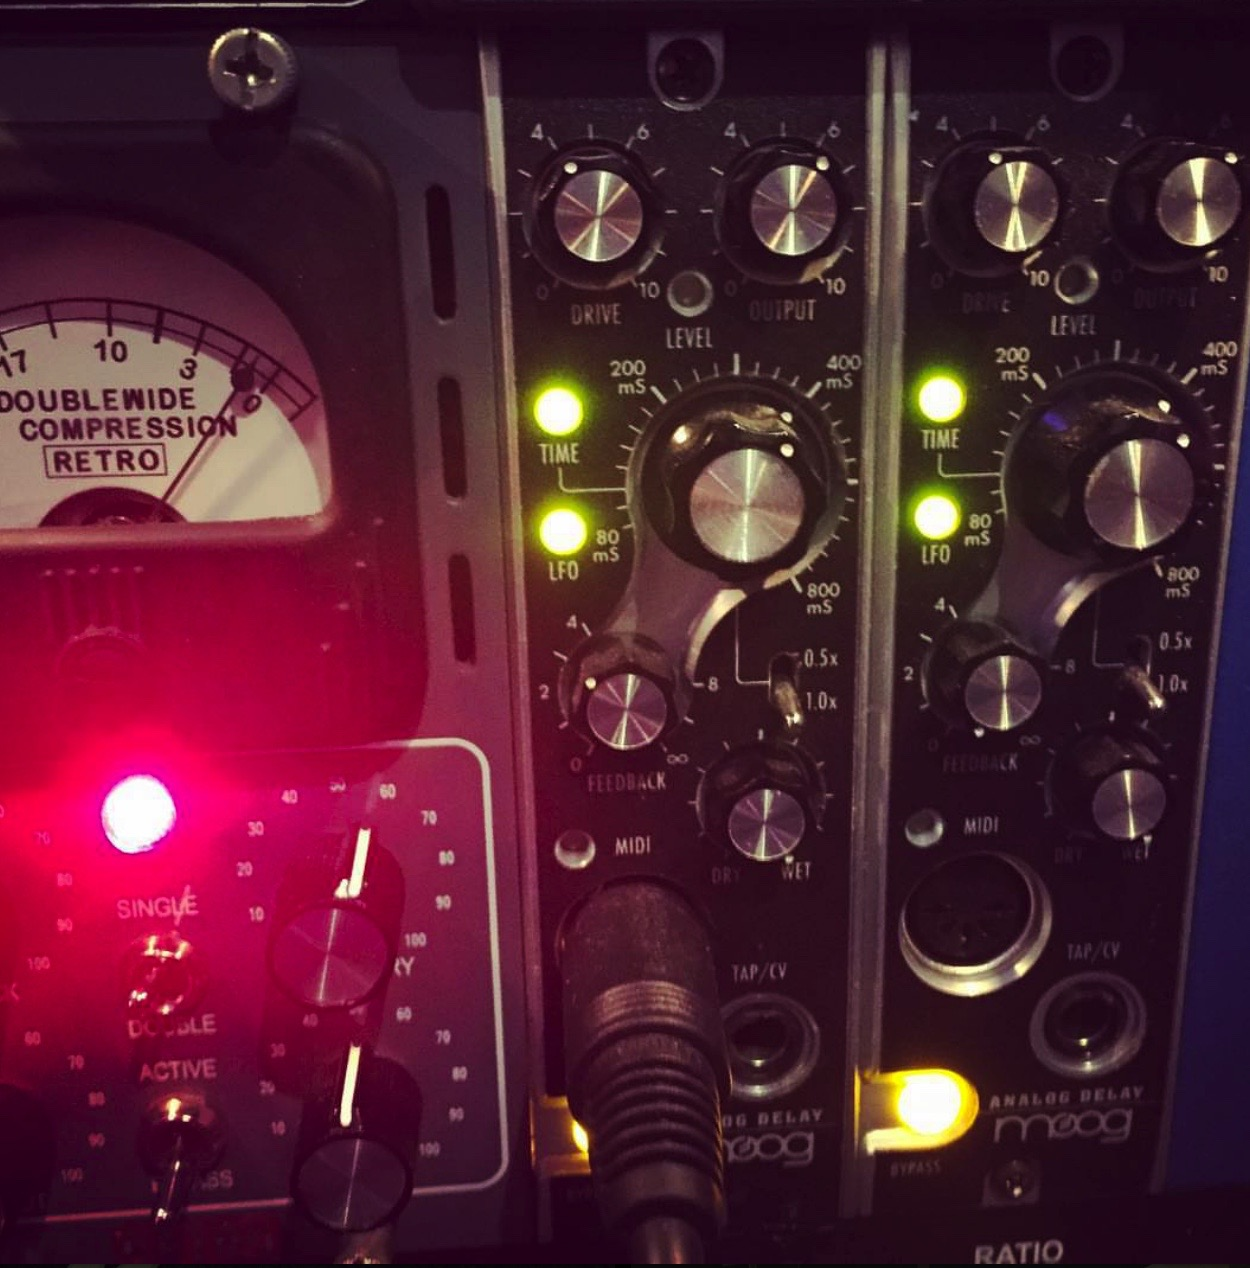 Effects & Other Processors - (1) Amtec LLI-5A (Pedal Interface)(1) Amtec DST-5A Harmonic Saturation(2) BBE Sonic Maximizer(2) Lexicon PCM-60(8) Little Labs RedCloud Attenuator(2) Moog 500 Analog Delay(1) Radial TankDriver(2) RND 542 Tape Emulator(1)    Benson Amps Studio Tall Bird Stereo Reverb(X)Various Spring Reverbs